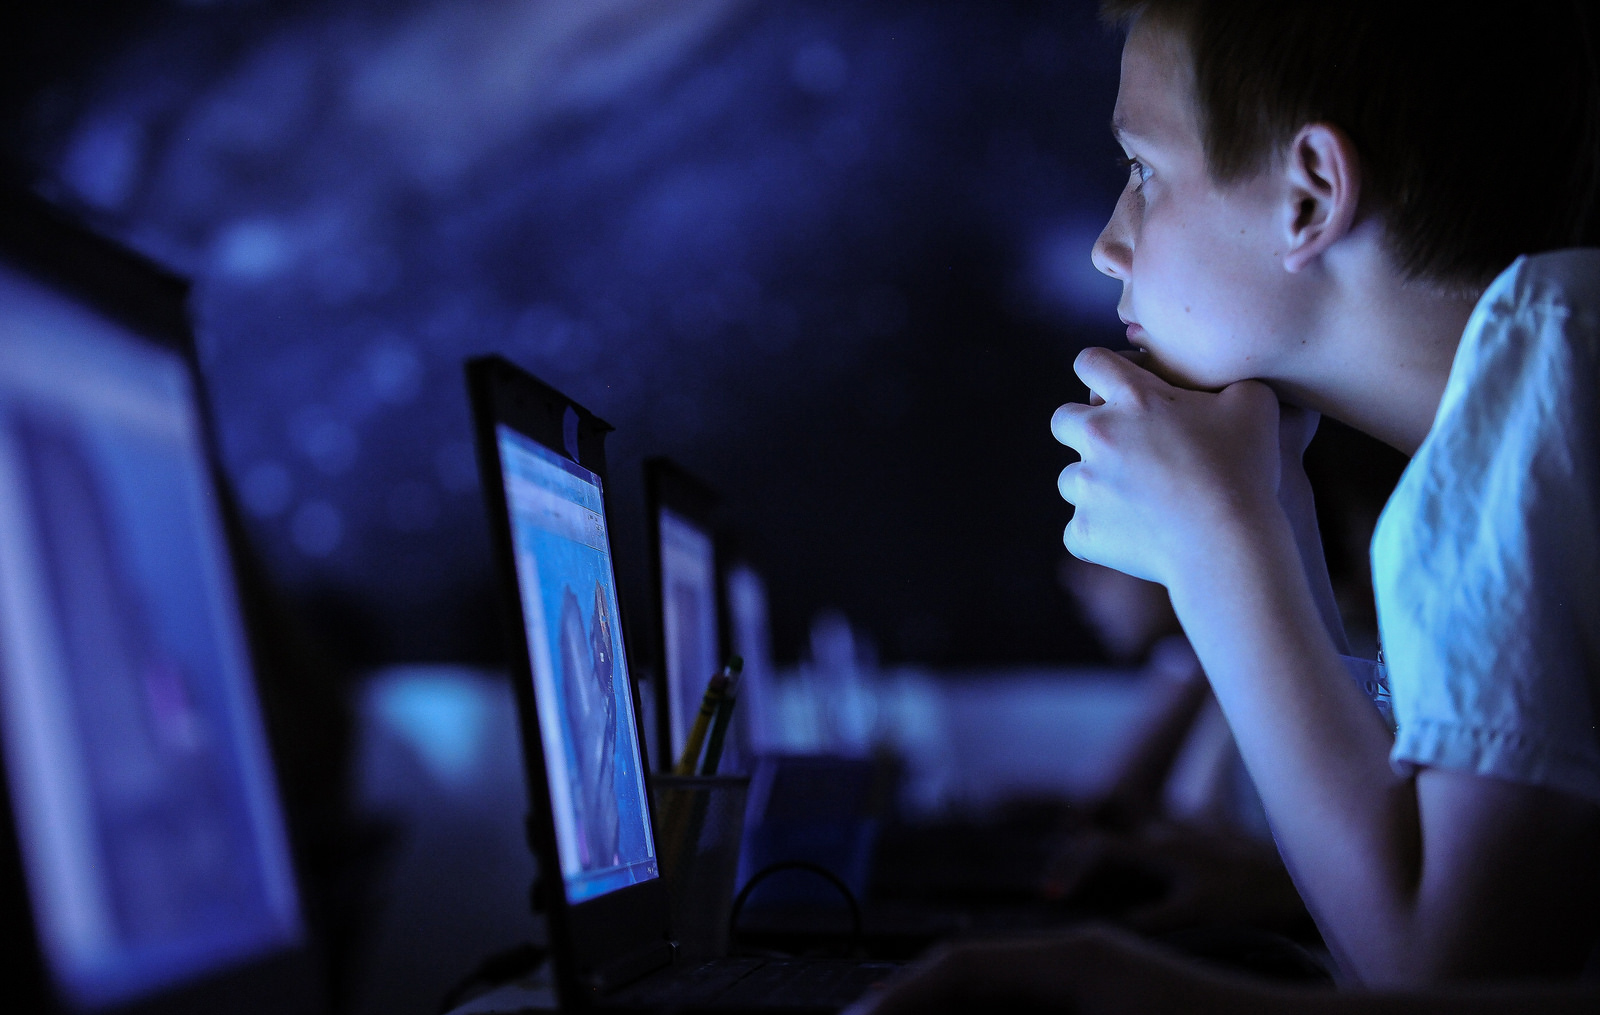 A Parent's Exploration Into His Child's Tech-Filled Life